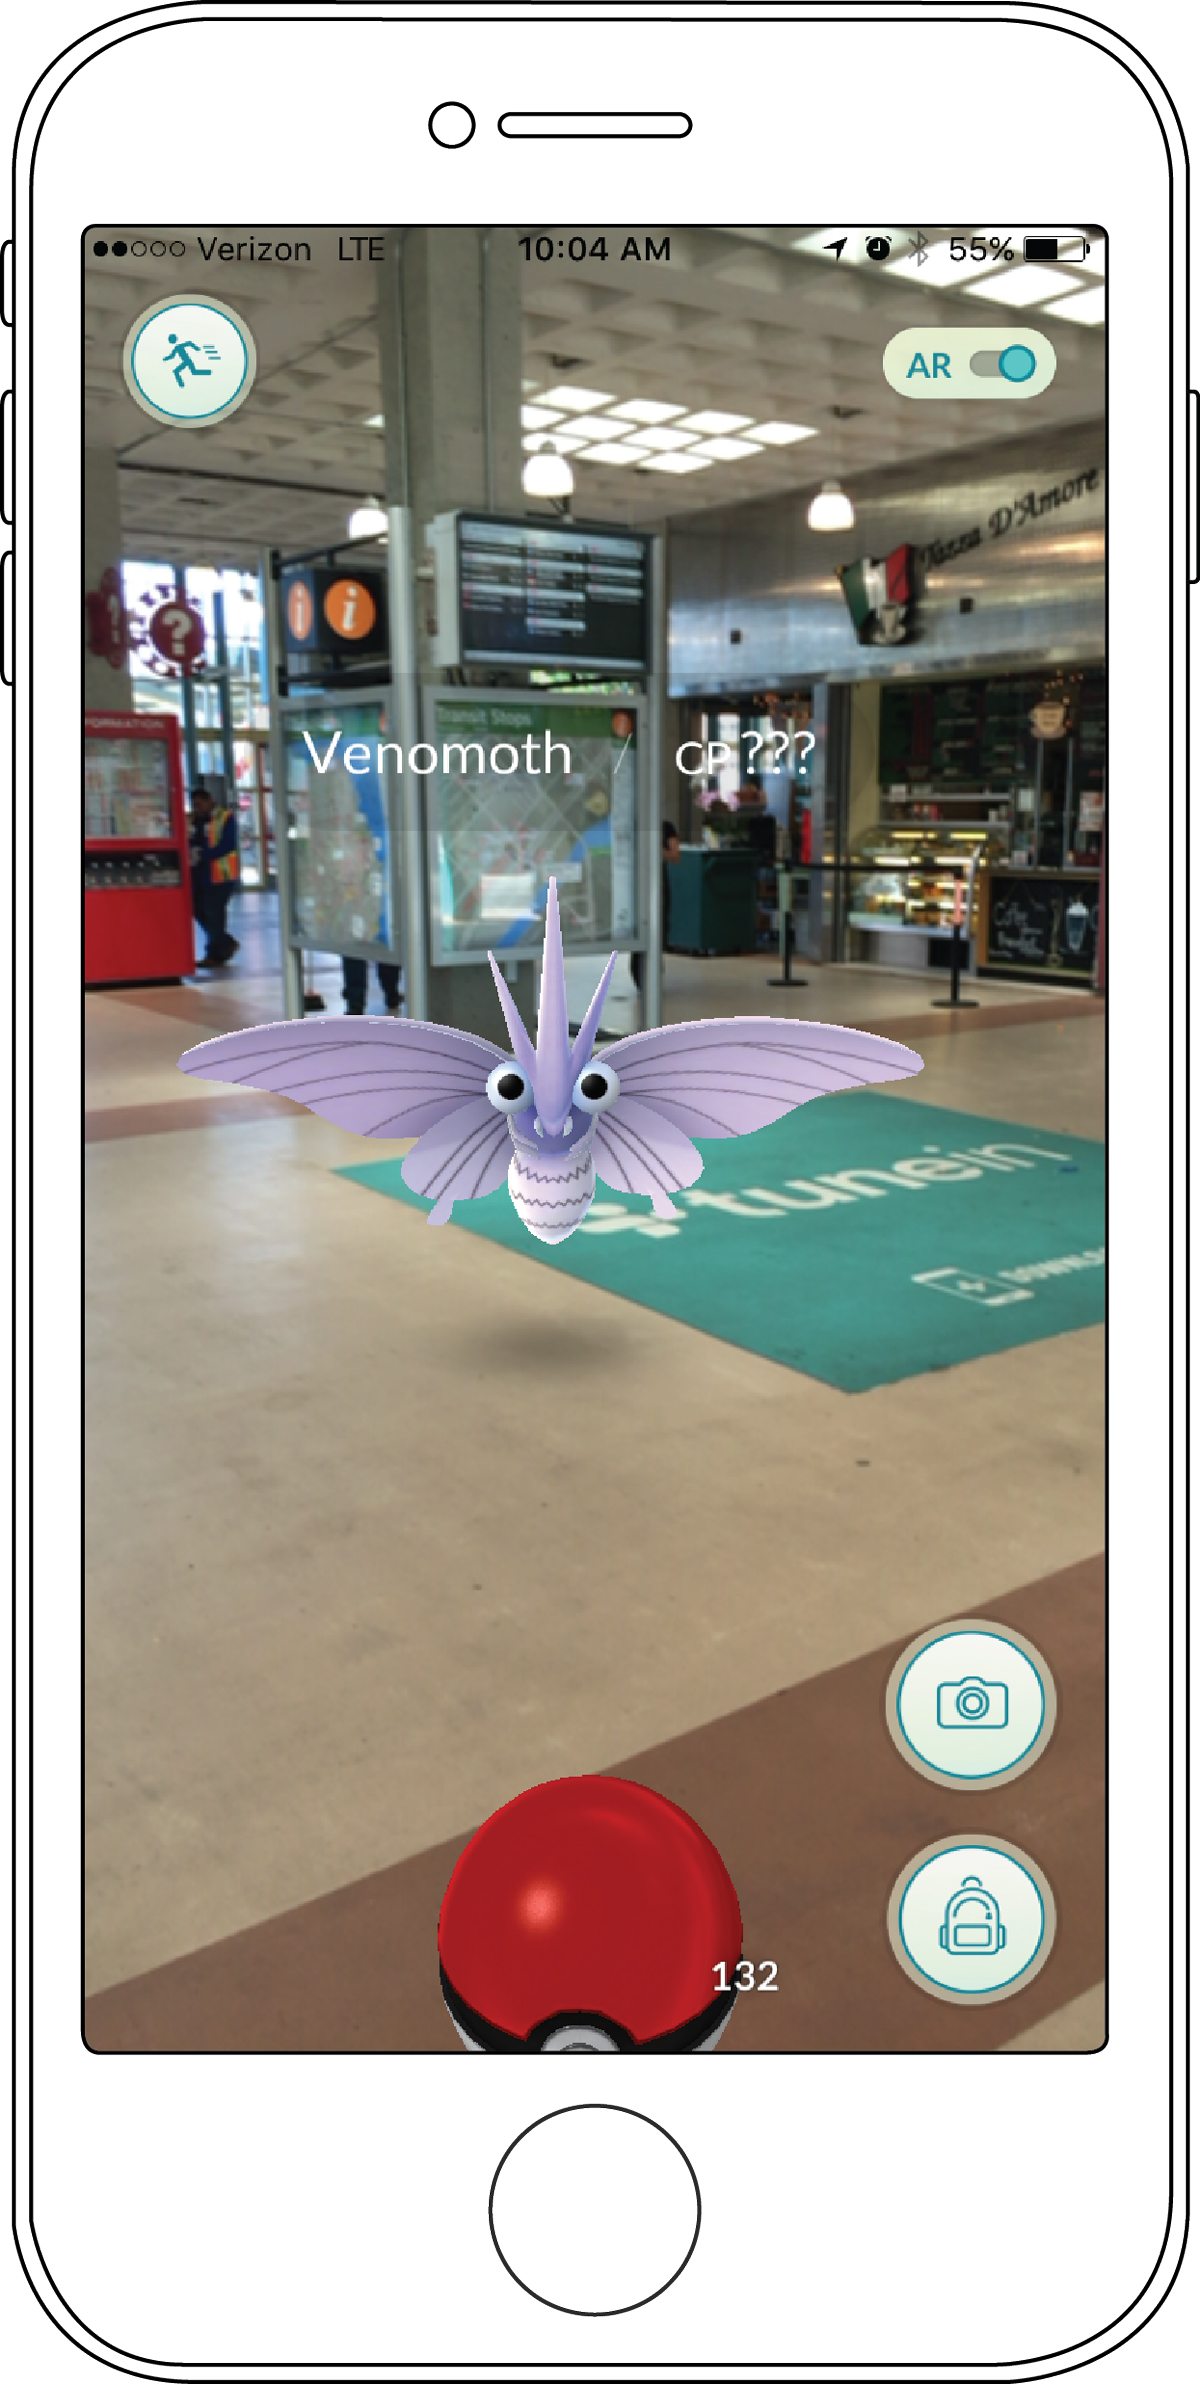 With the Pokémon Go game, you can use your smartphone to find and capture Pokémon creatures.